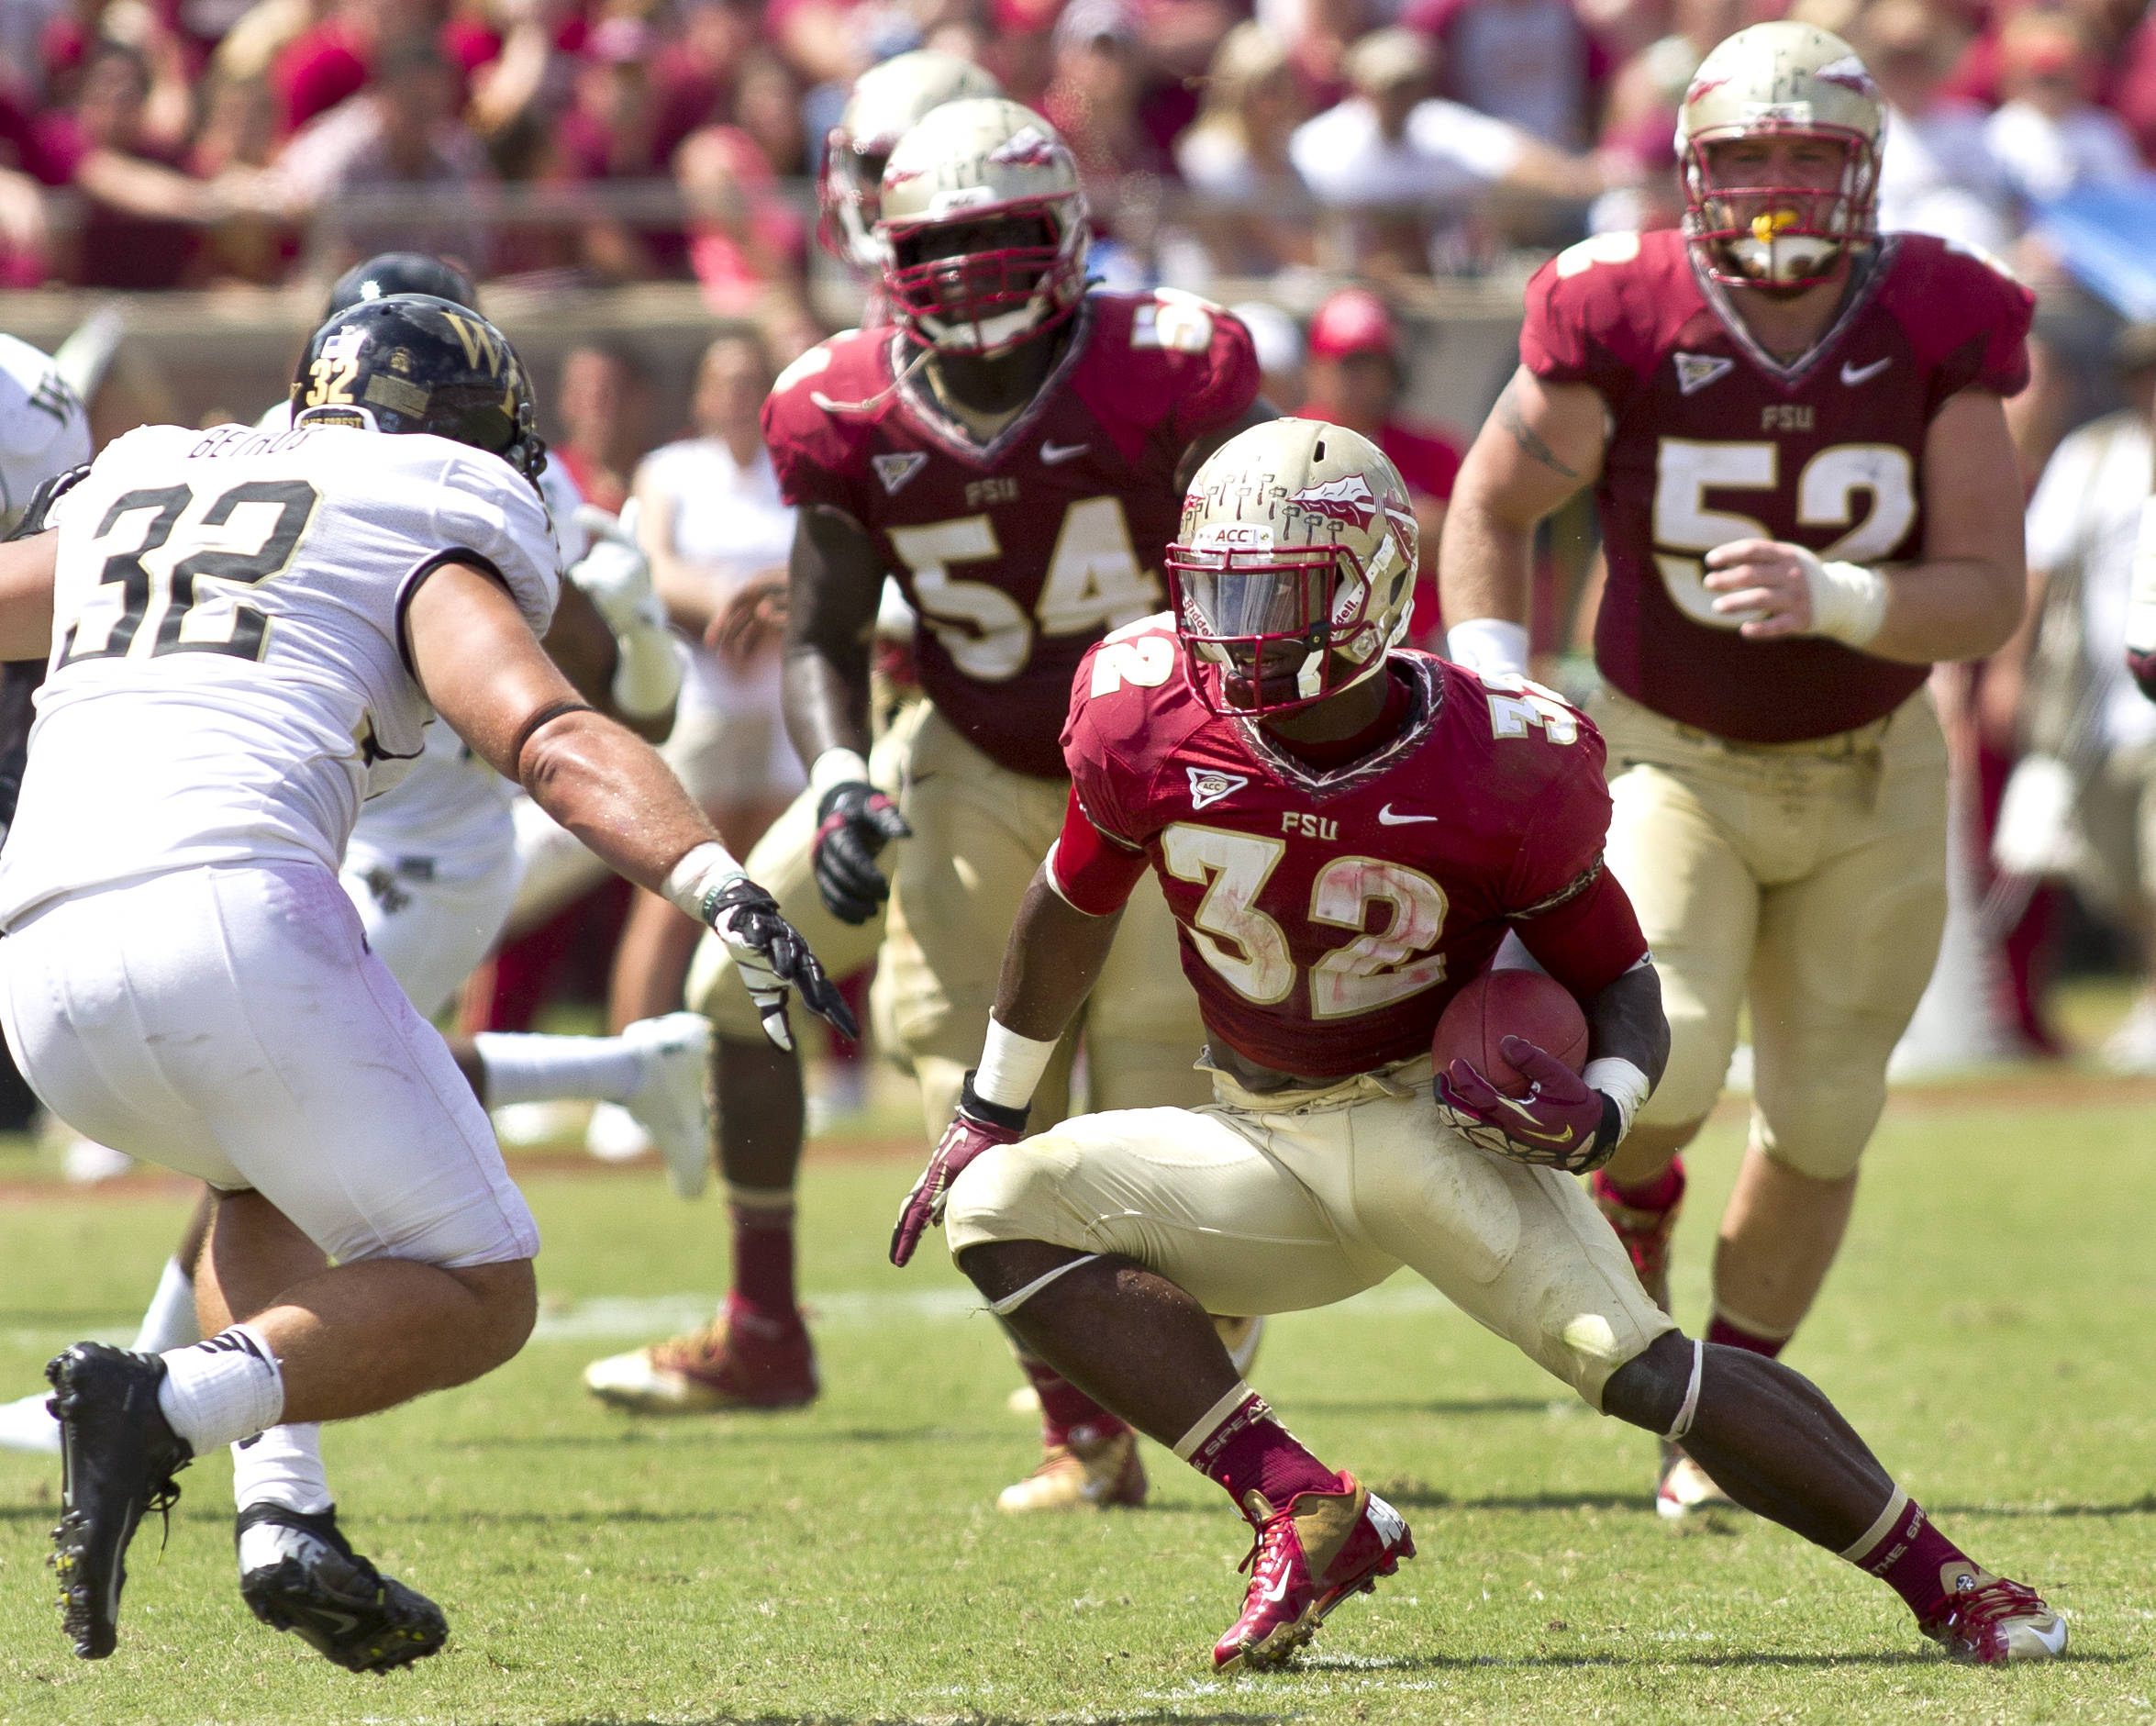 James Wilder Jr. (32) changing directions on his run, FSU vs Wake Forest, 9/15/12 (Photo by Steve Musco)